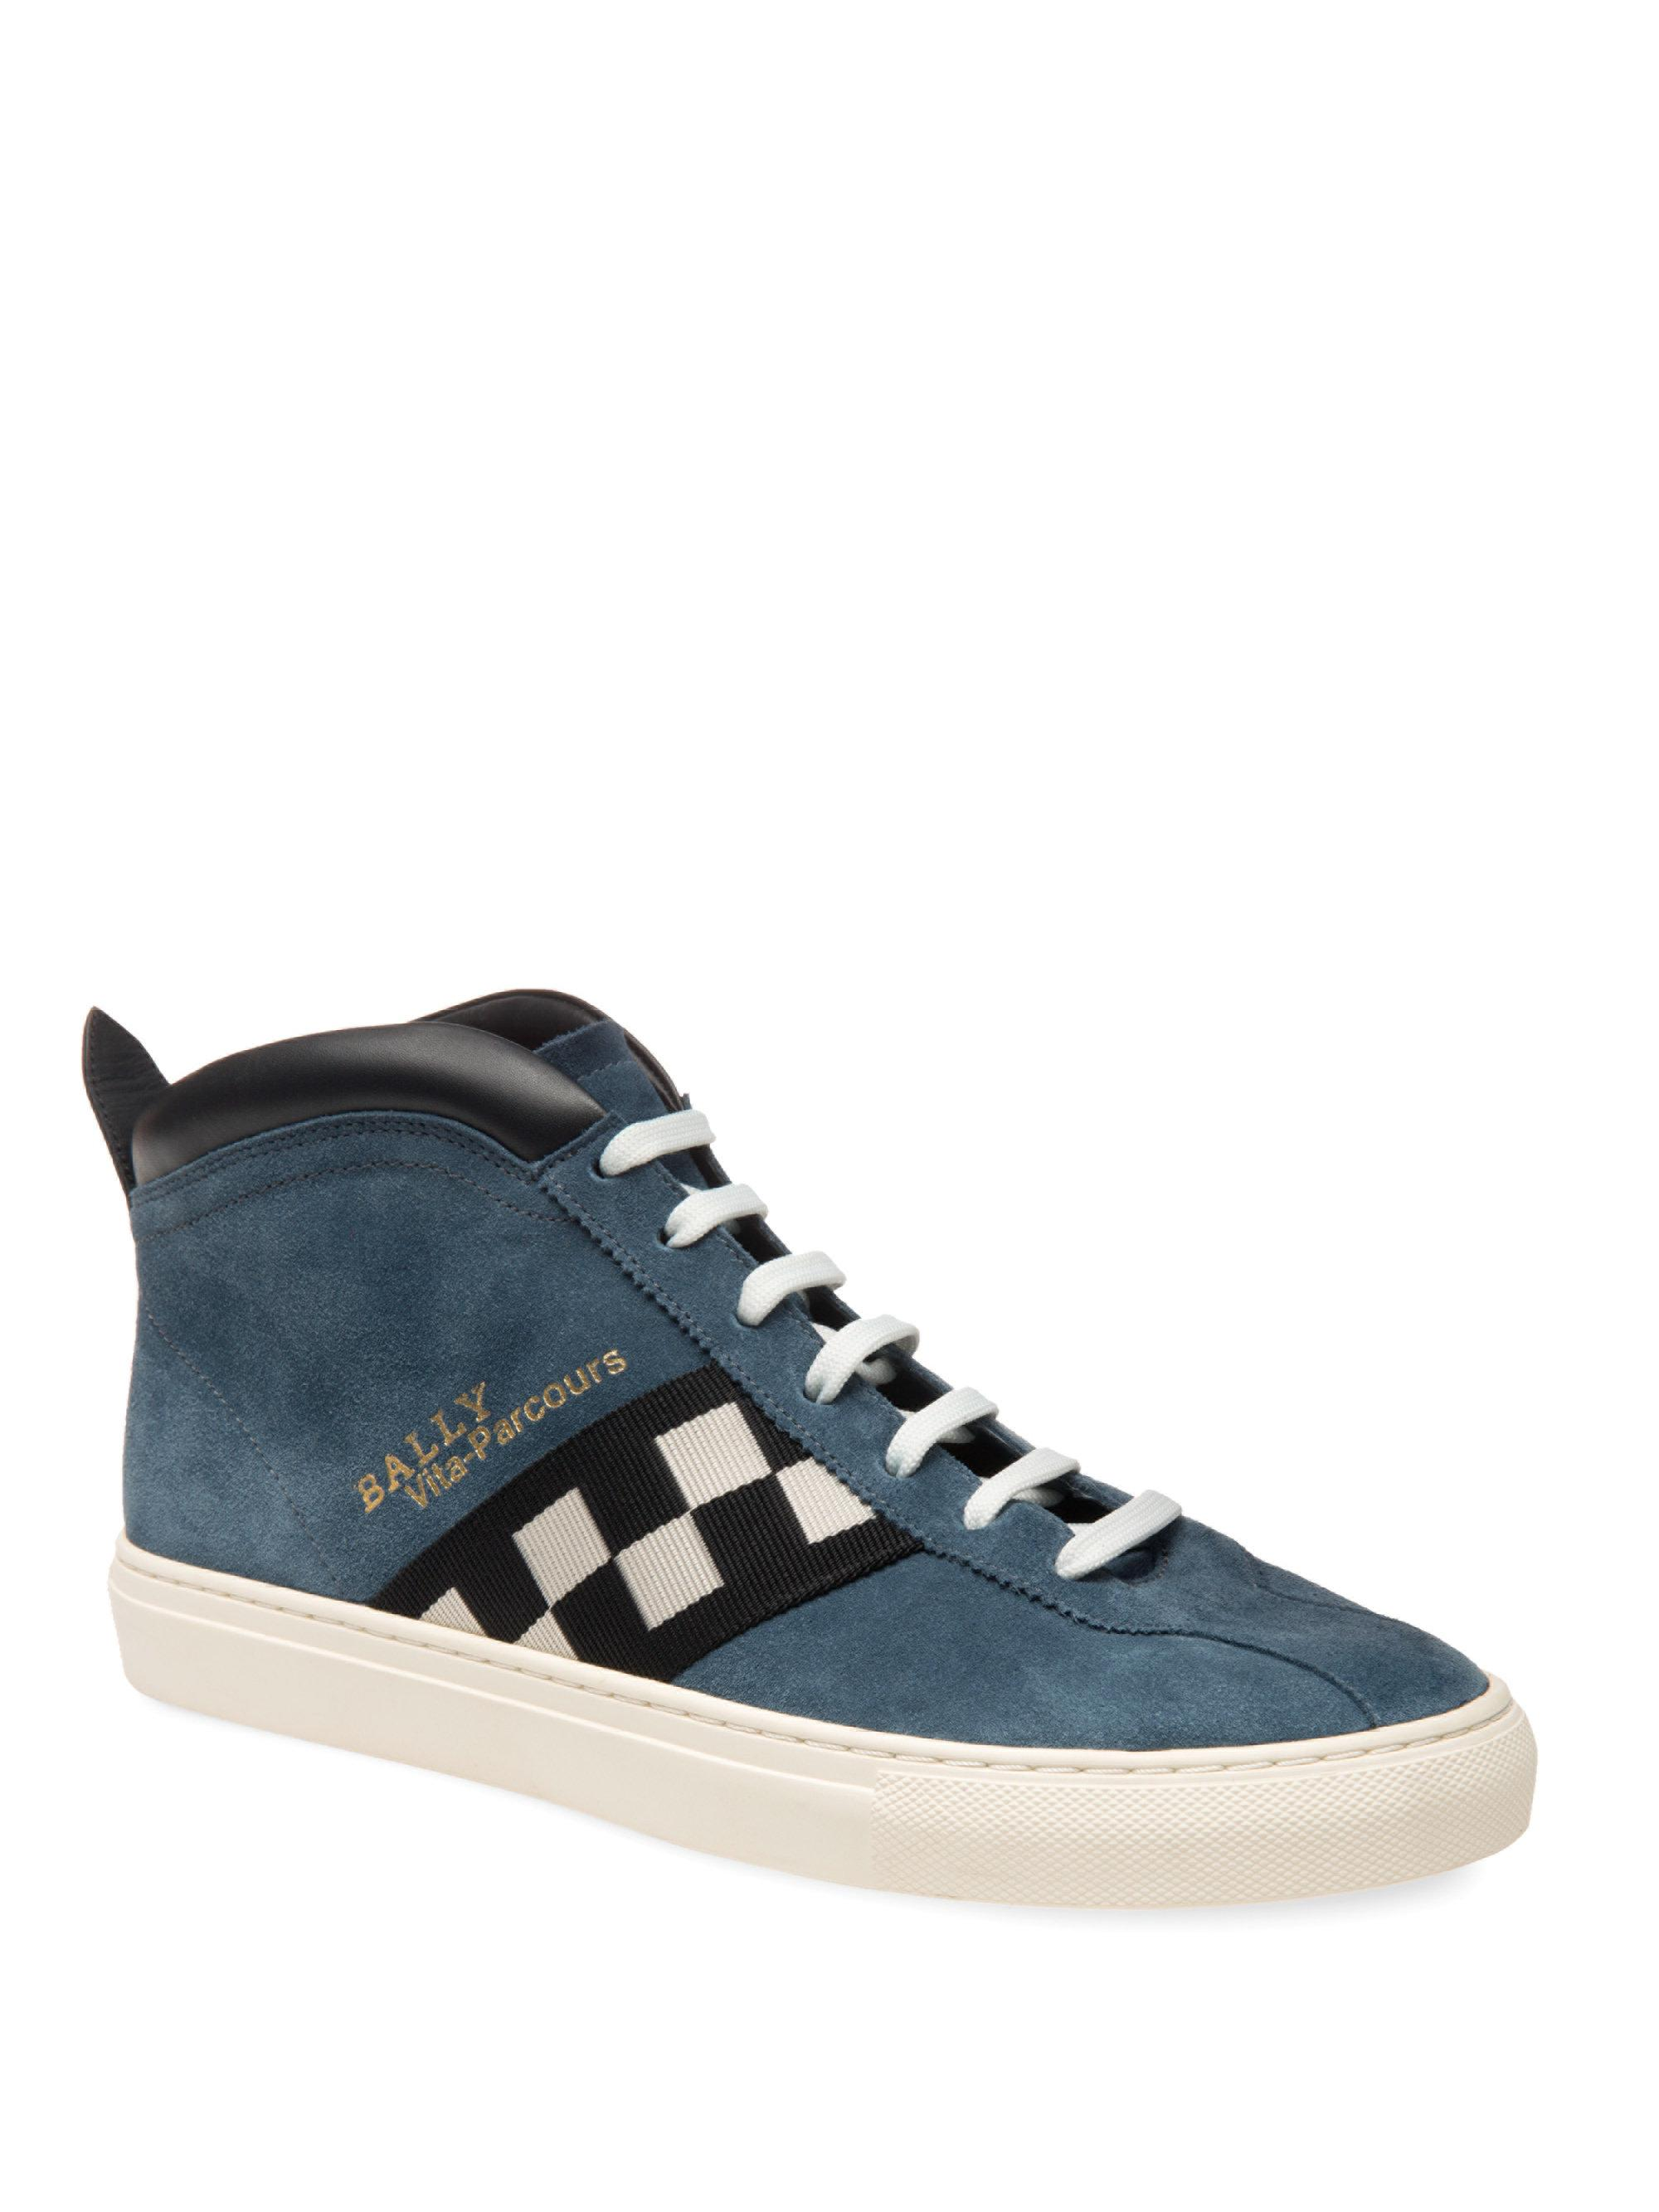 BallyMen's The Vita Parcours Sneakers edzFf